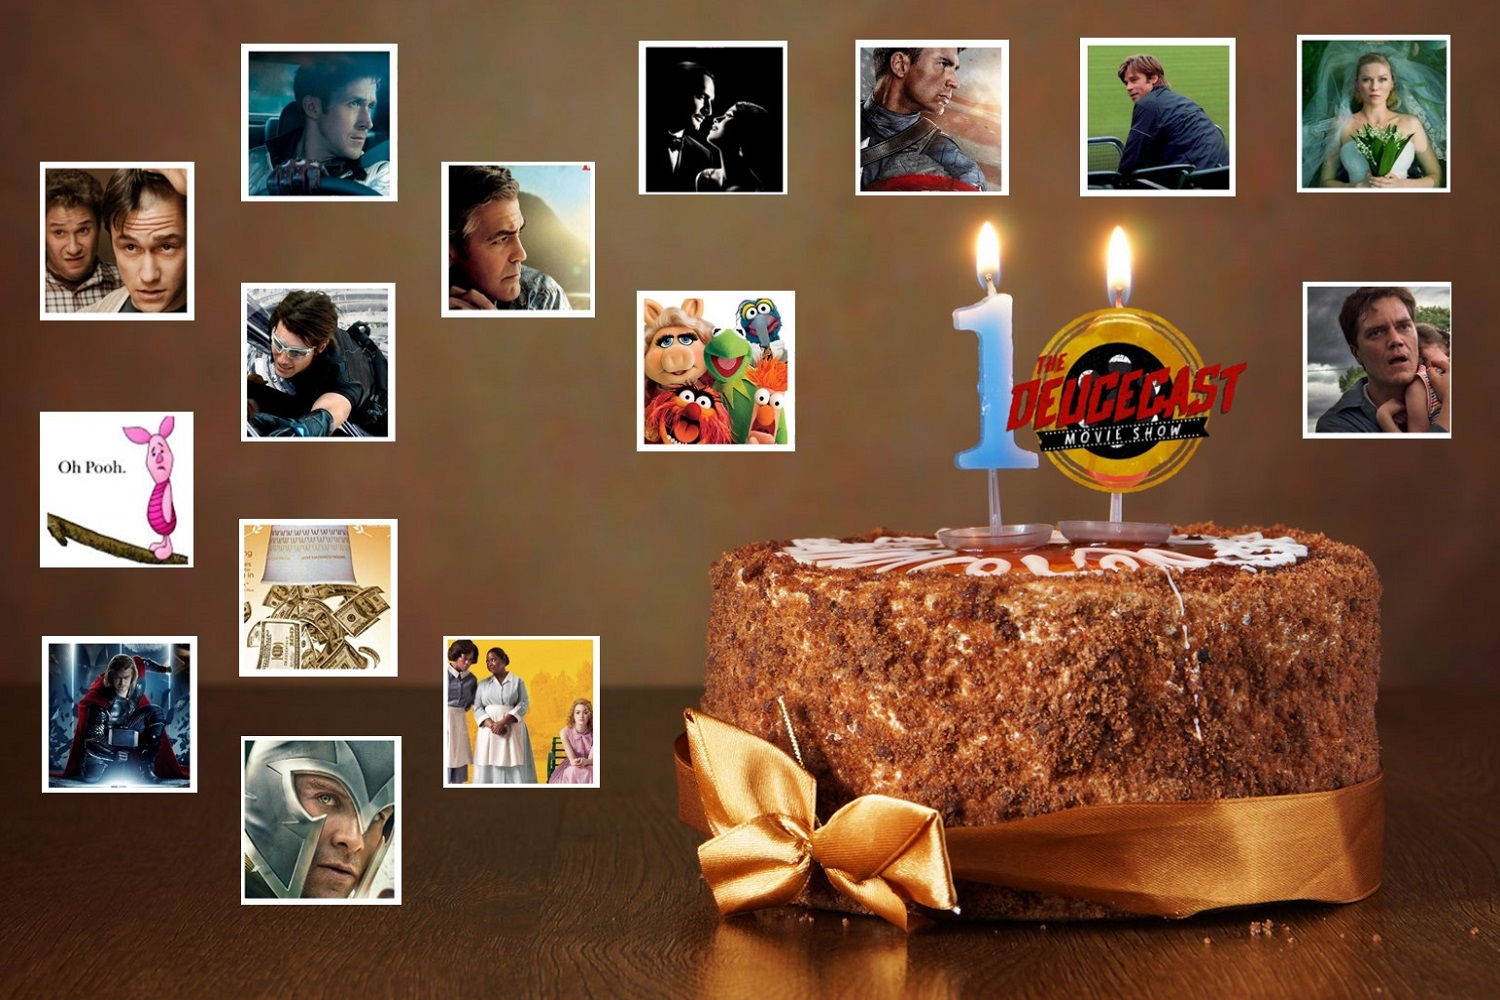 The Deucecast Movie Show #475: The 10th Anniversary Show